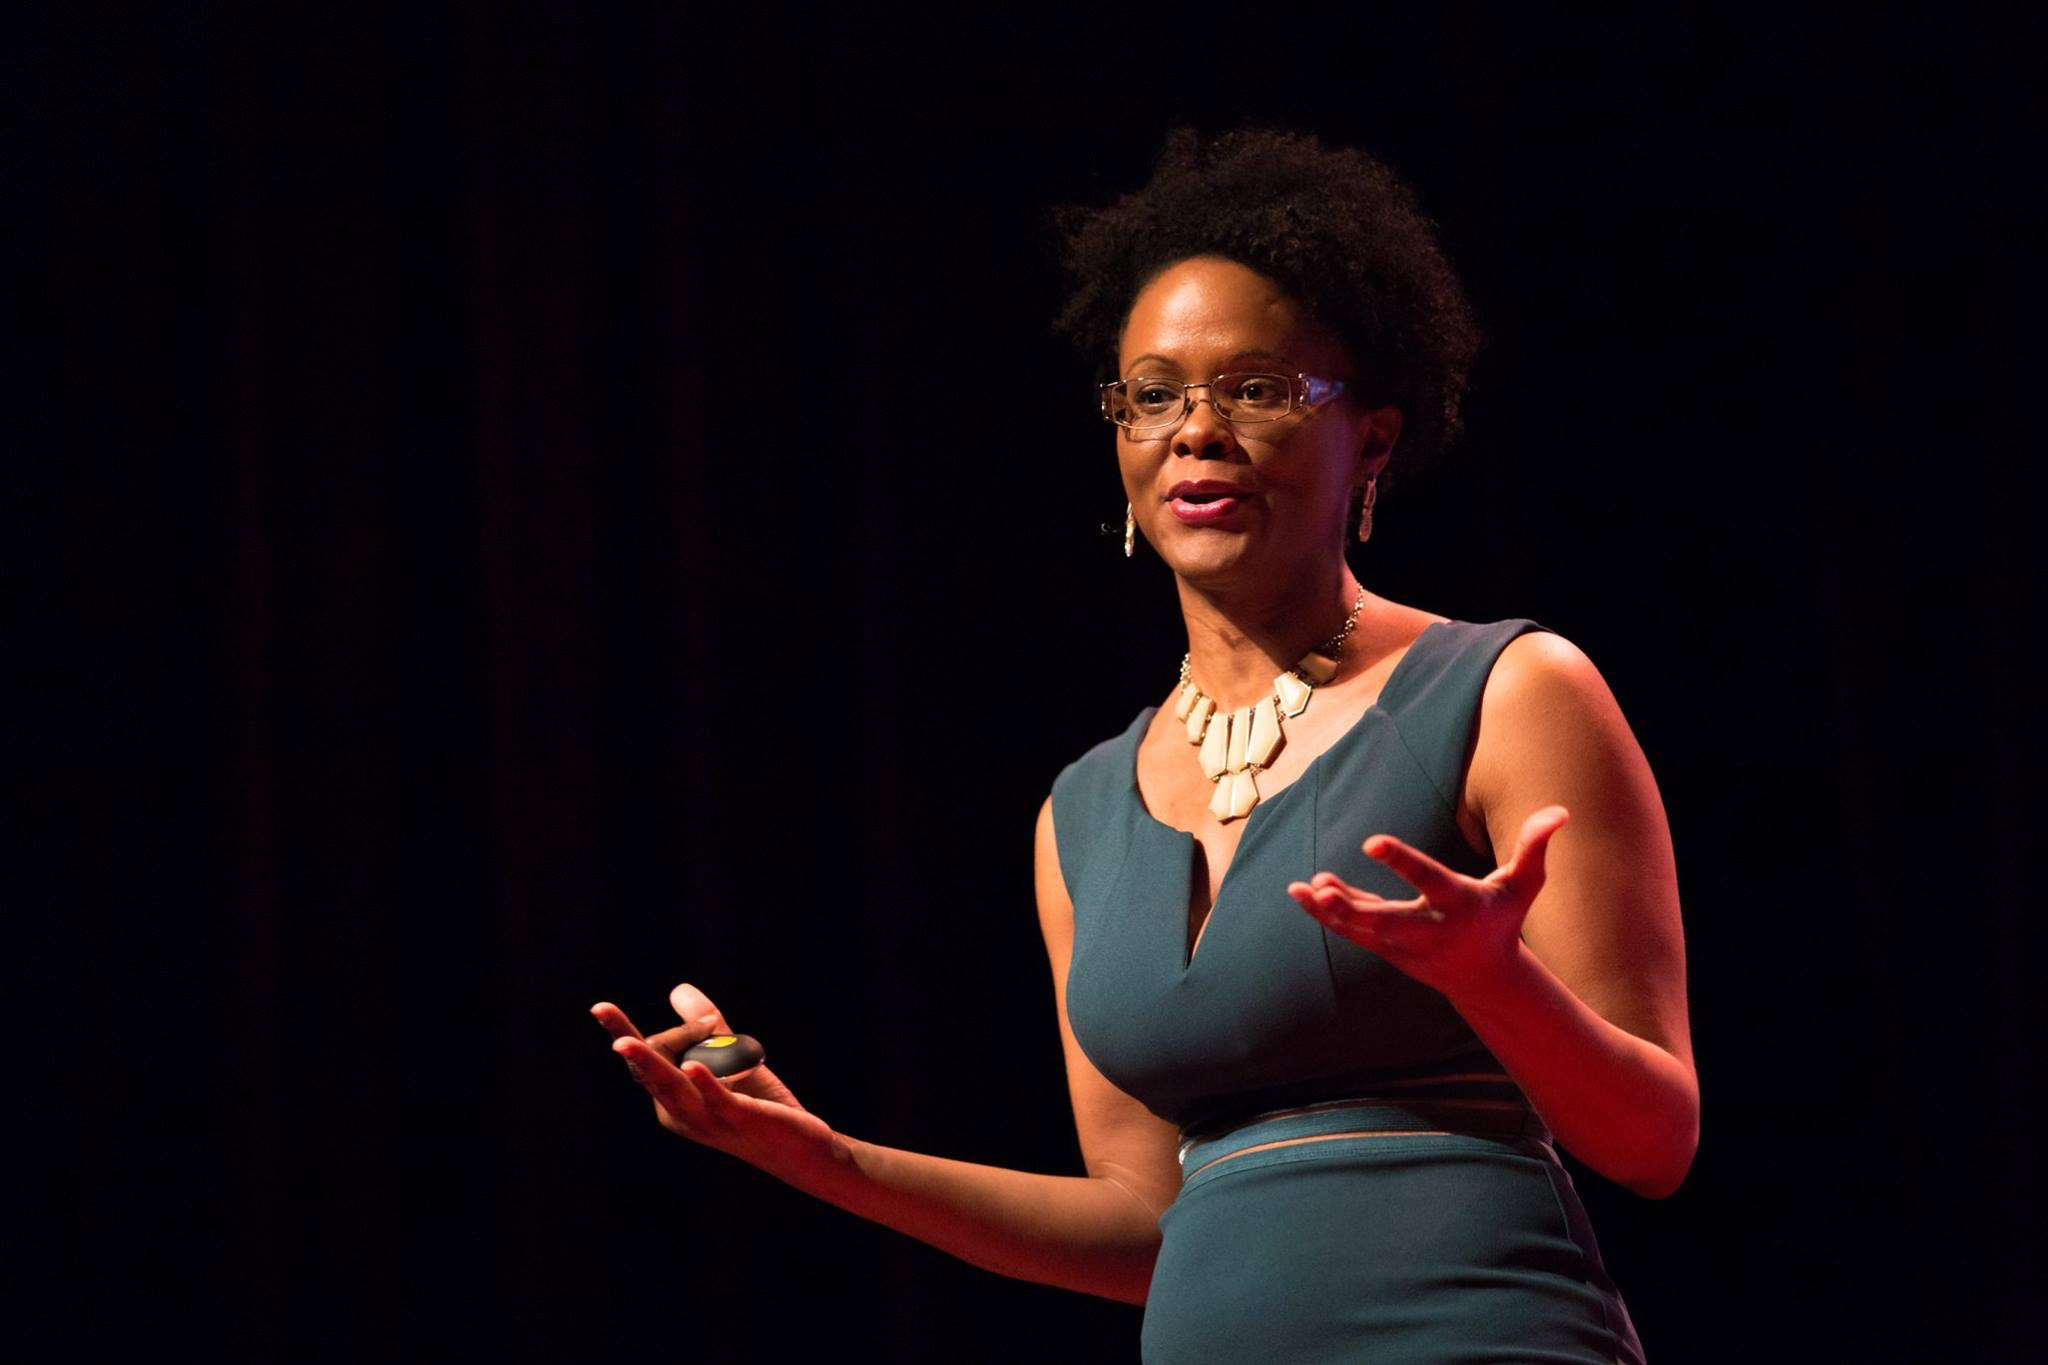 Alicia M Morgan delivering TEDx talk in Plano Texas